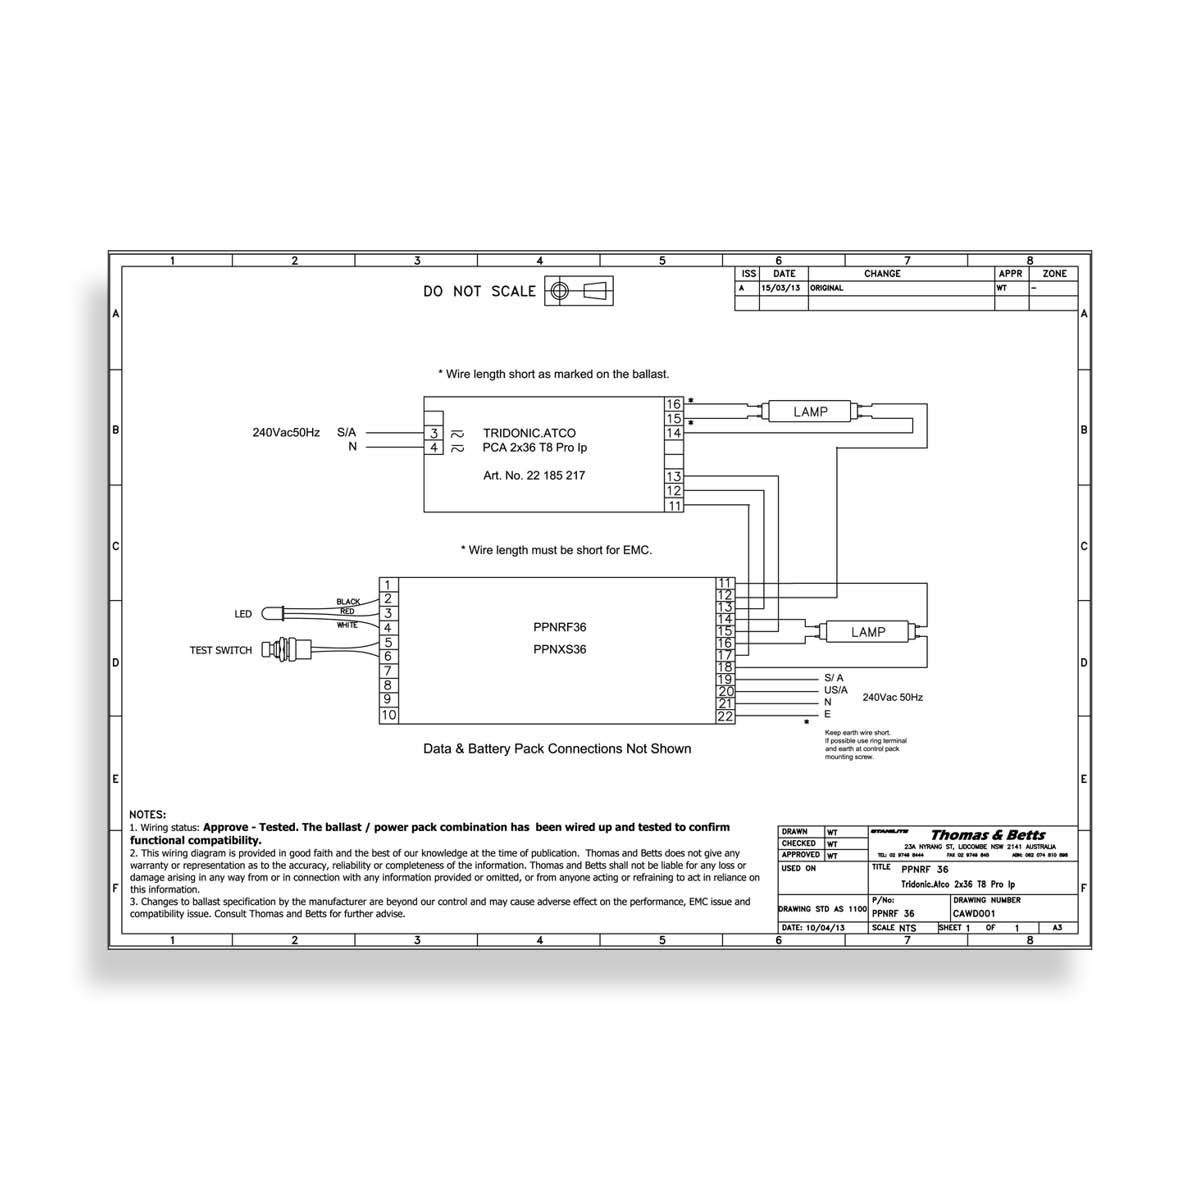 resourceswiringdiagram_el4ph?wid=618&hei=300 thomas & betts australasia resources end user tools wiring vossloh schwabe ballast wiring diagram at couponss.co